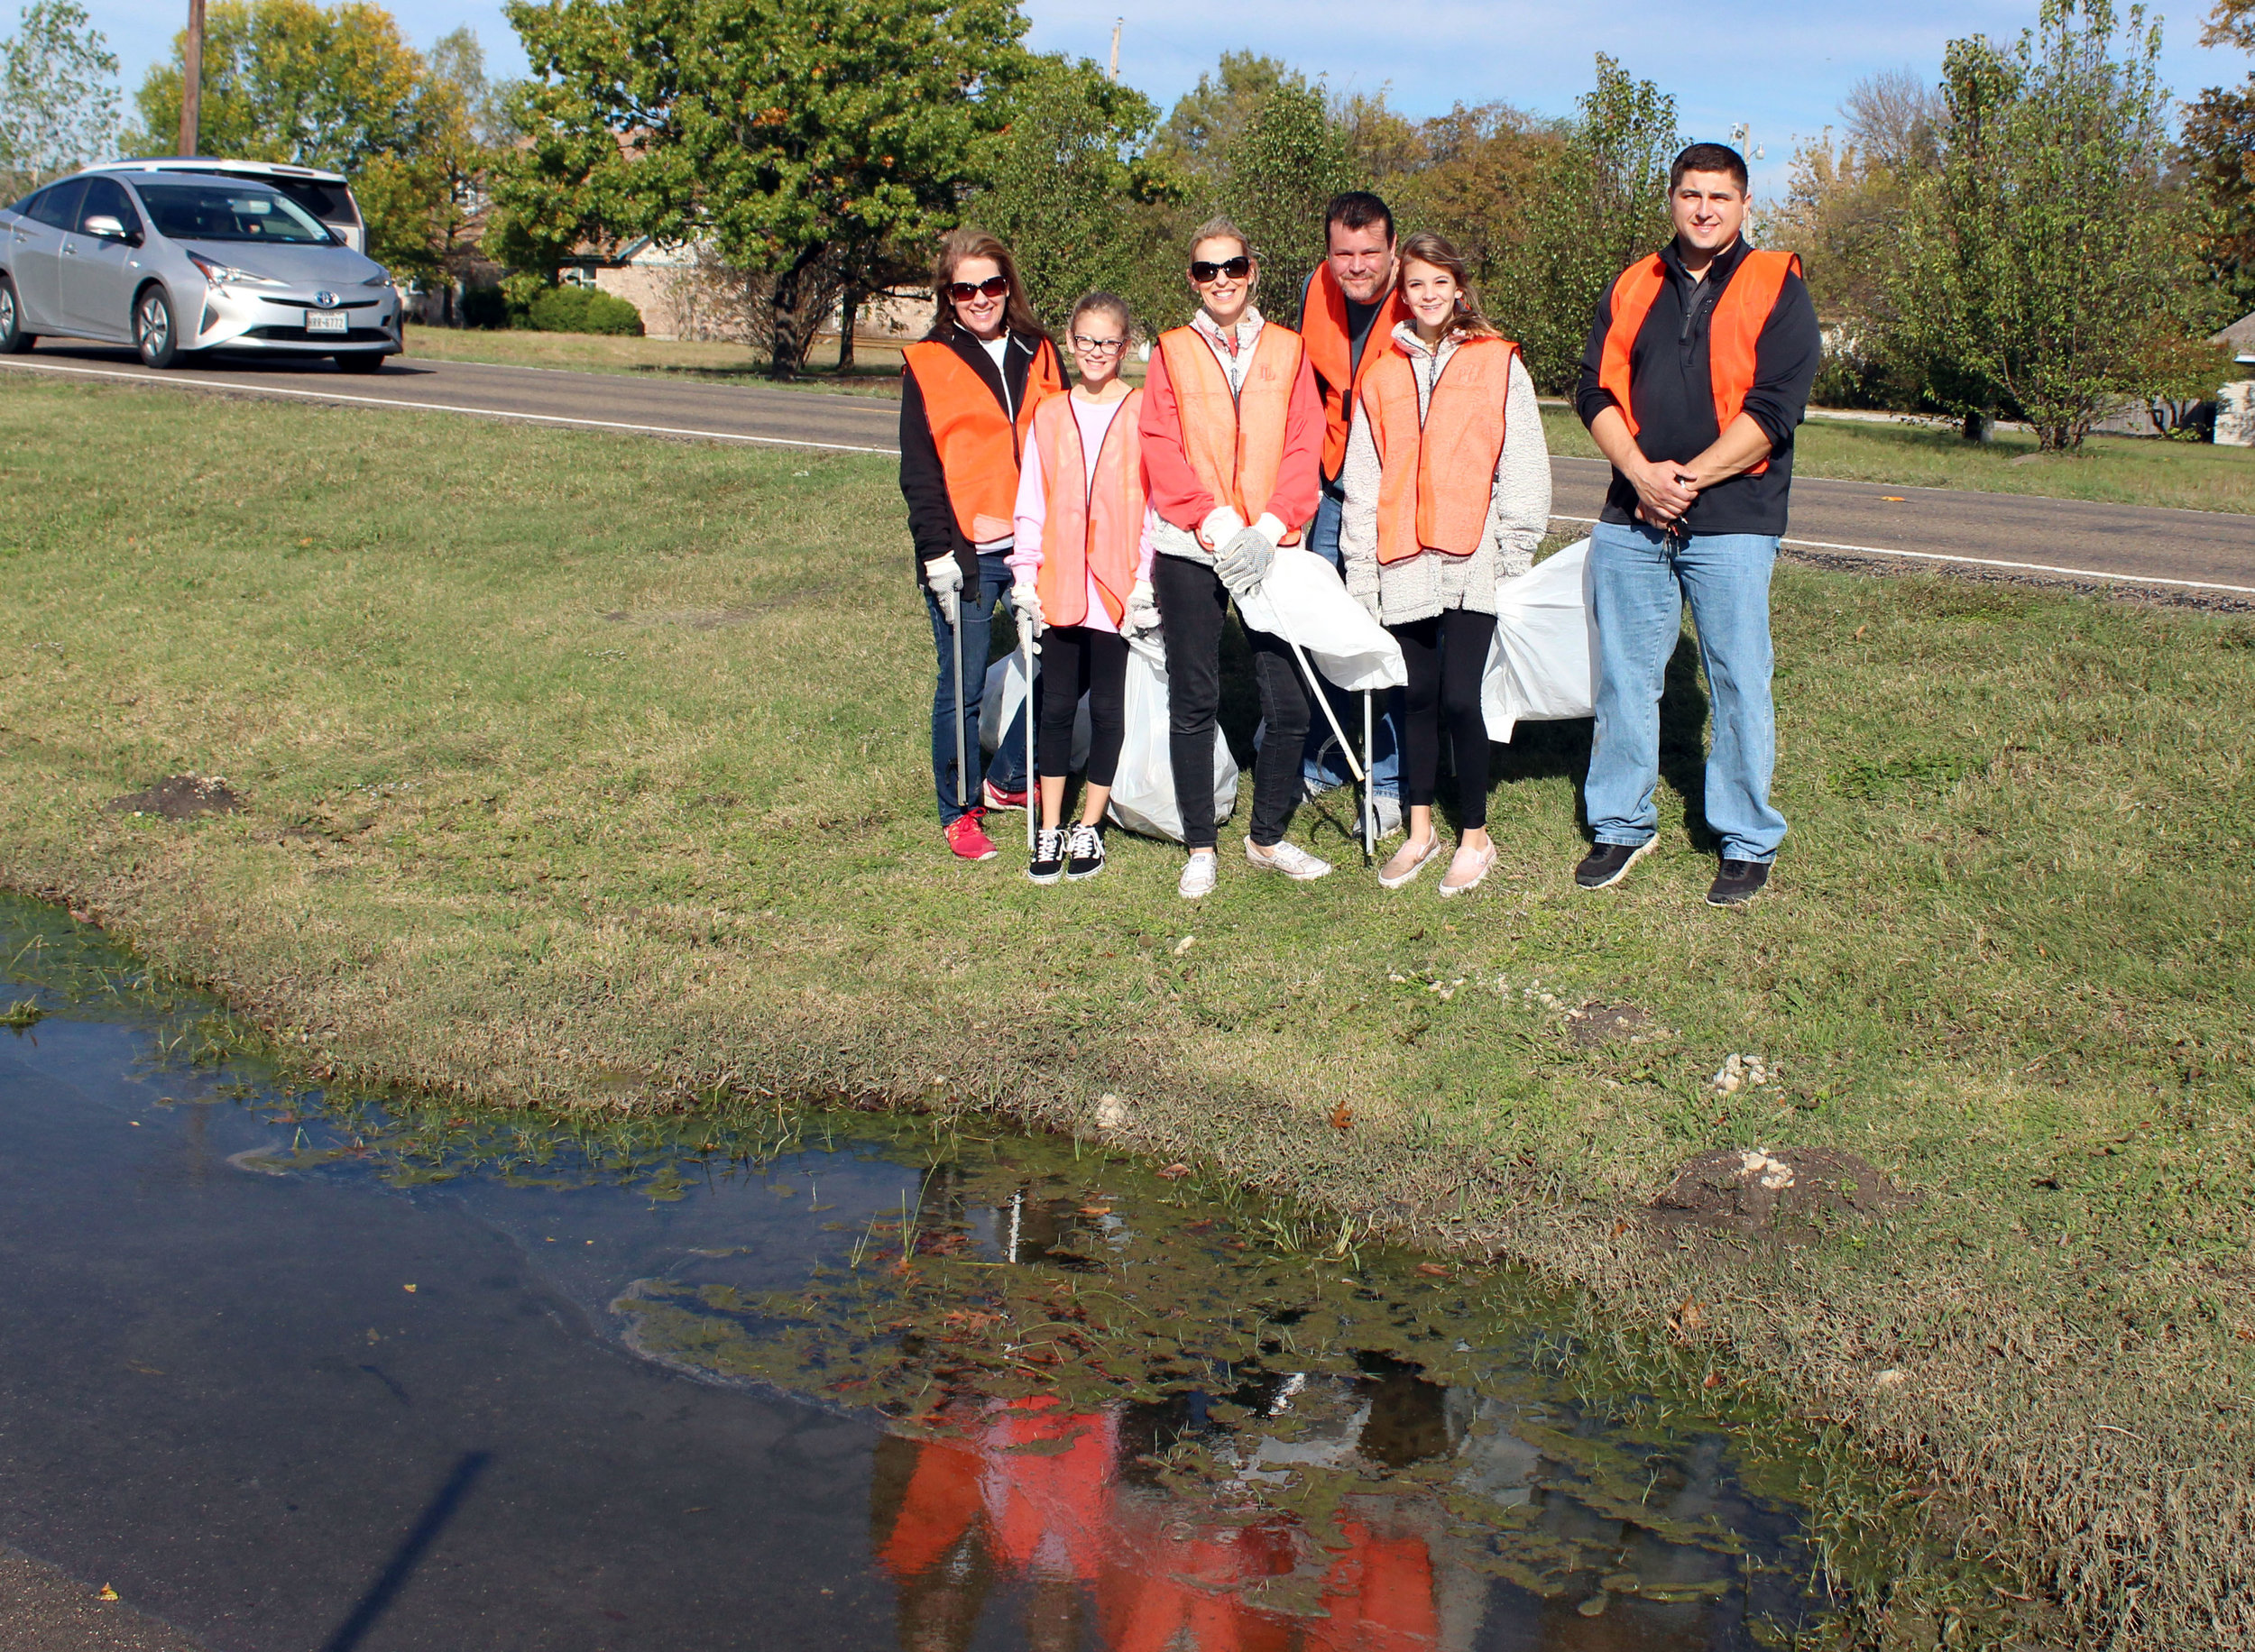 A clean-up crew worked on Estates Road in front of Grace Church. (From left) City of Lucas Parks and Open Space board member Debra Guillemaud, The Zadorozny Family – Presley, Becky, Dan and Piper and City of Lucas employee Anthony Aguinaga.